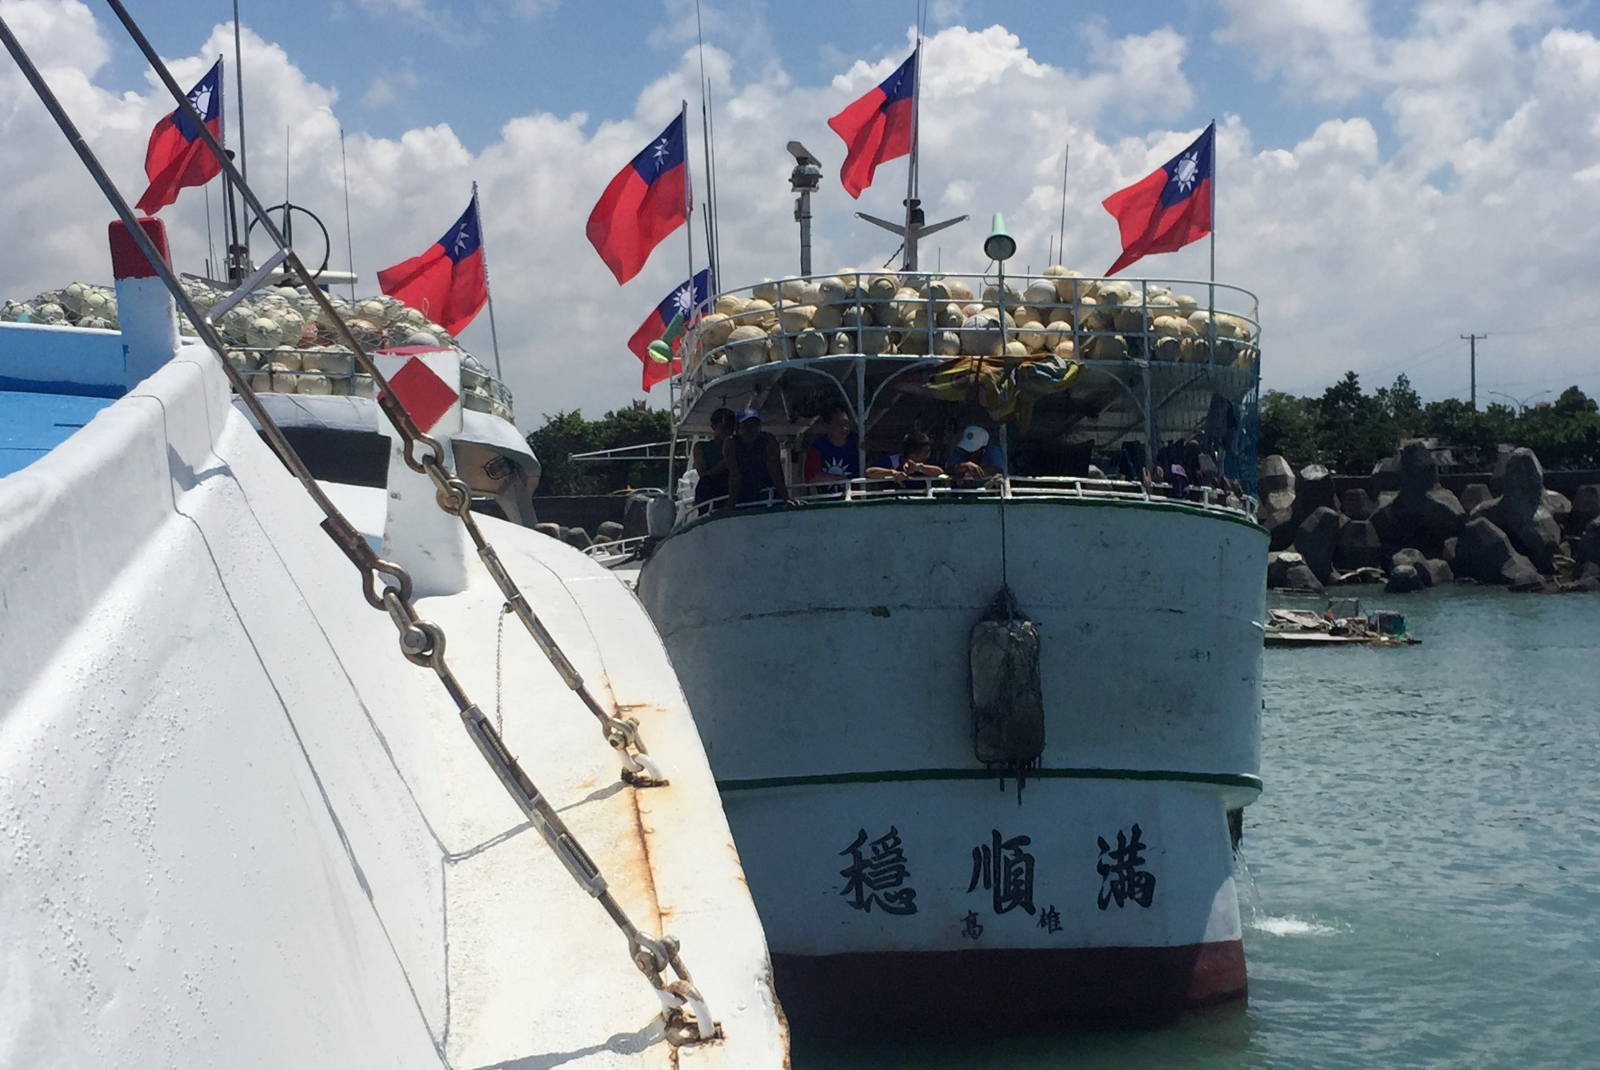 Taiwanese fishermen in South China Sea